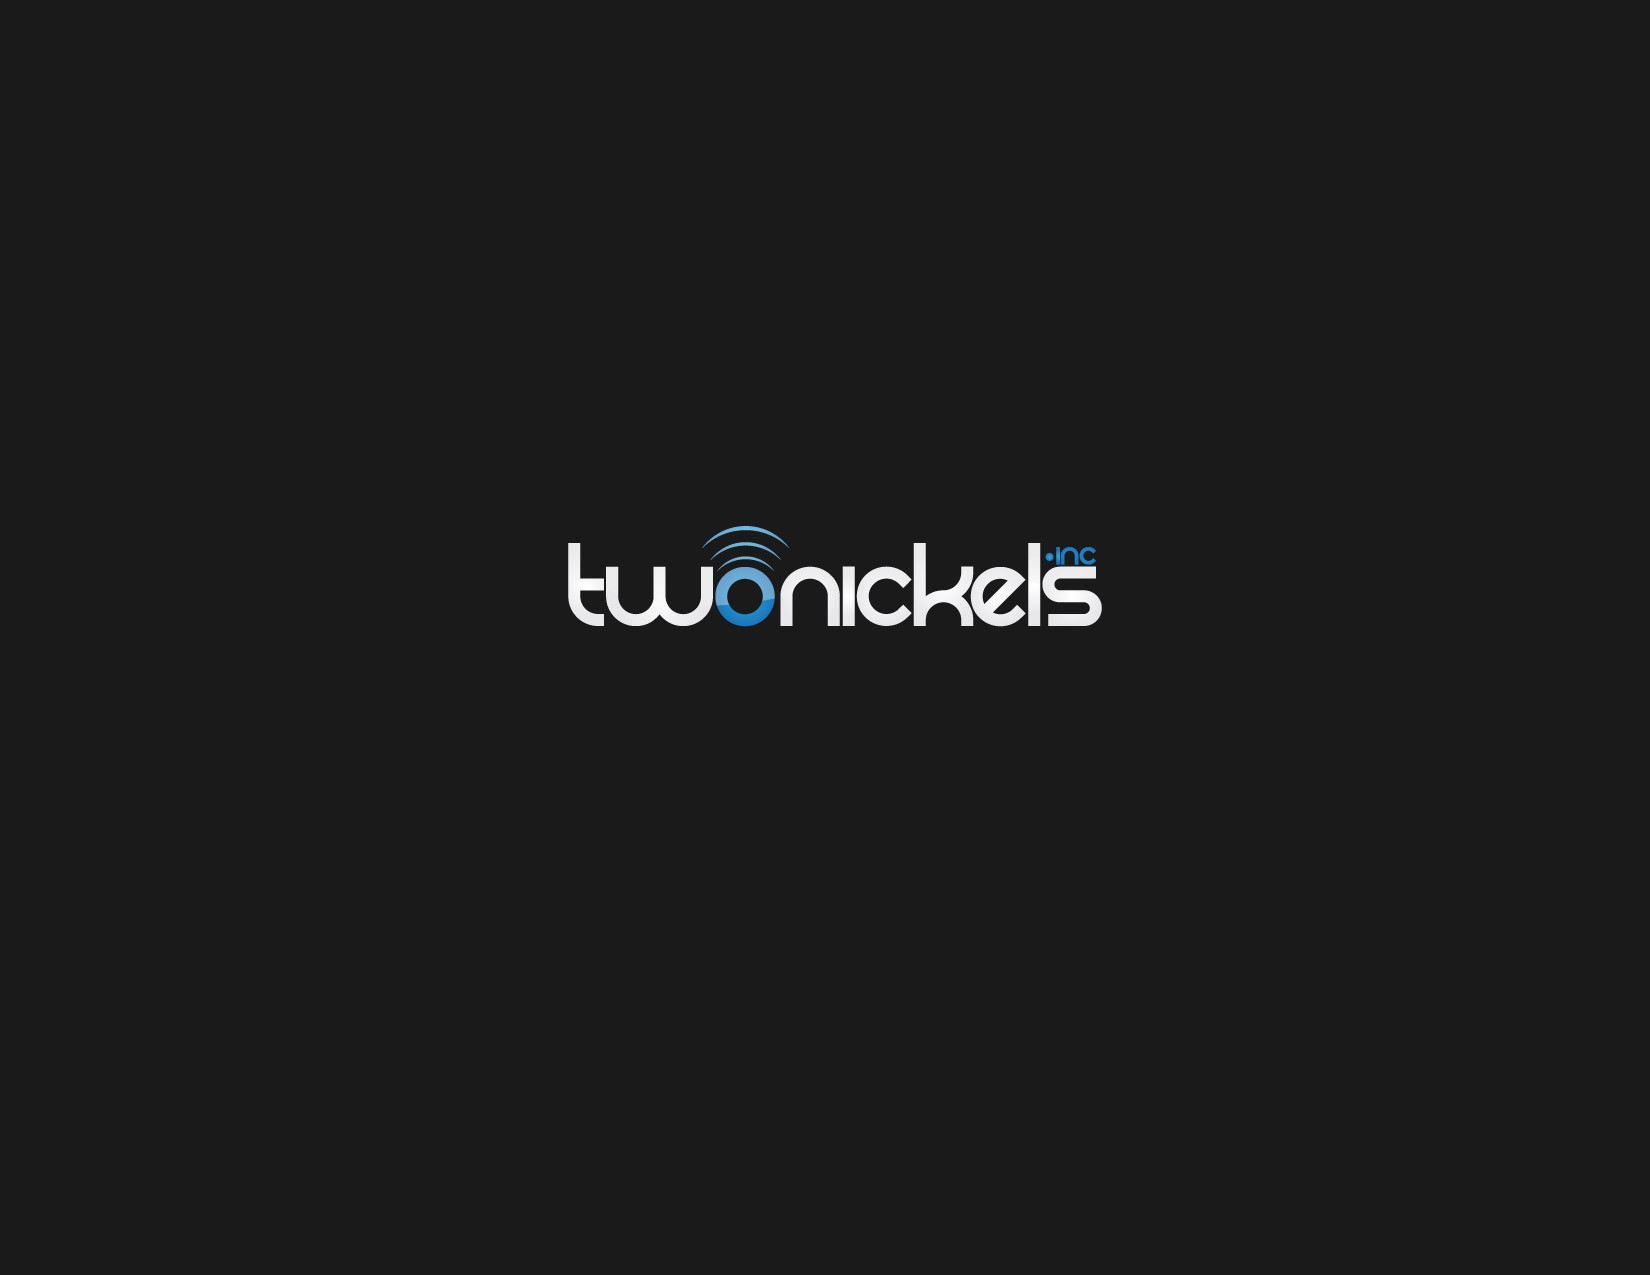 New logo wanted for Two NIckels, Inc.